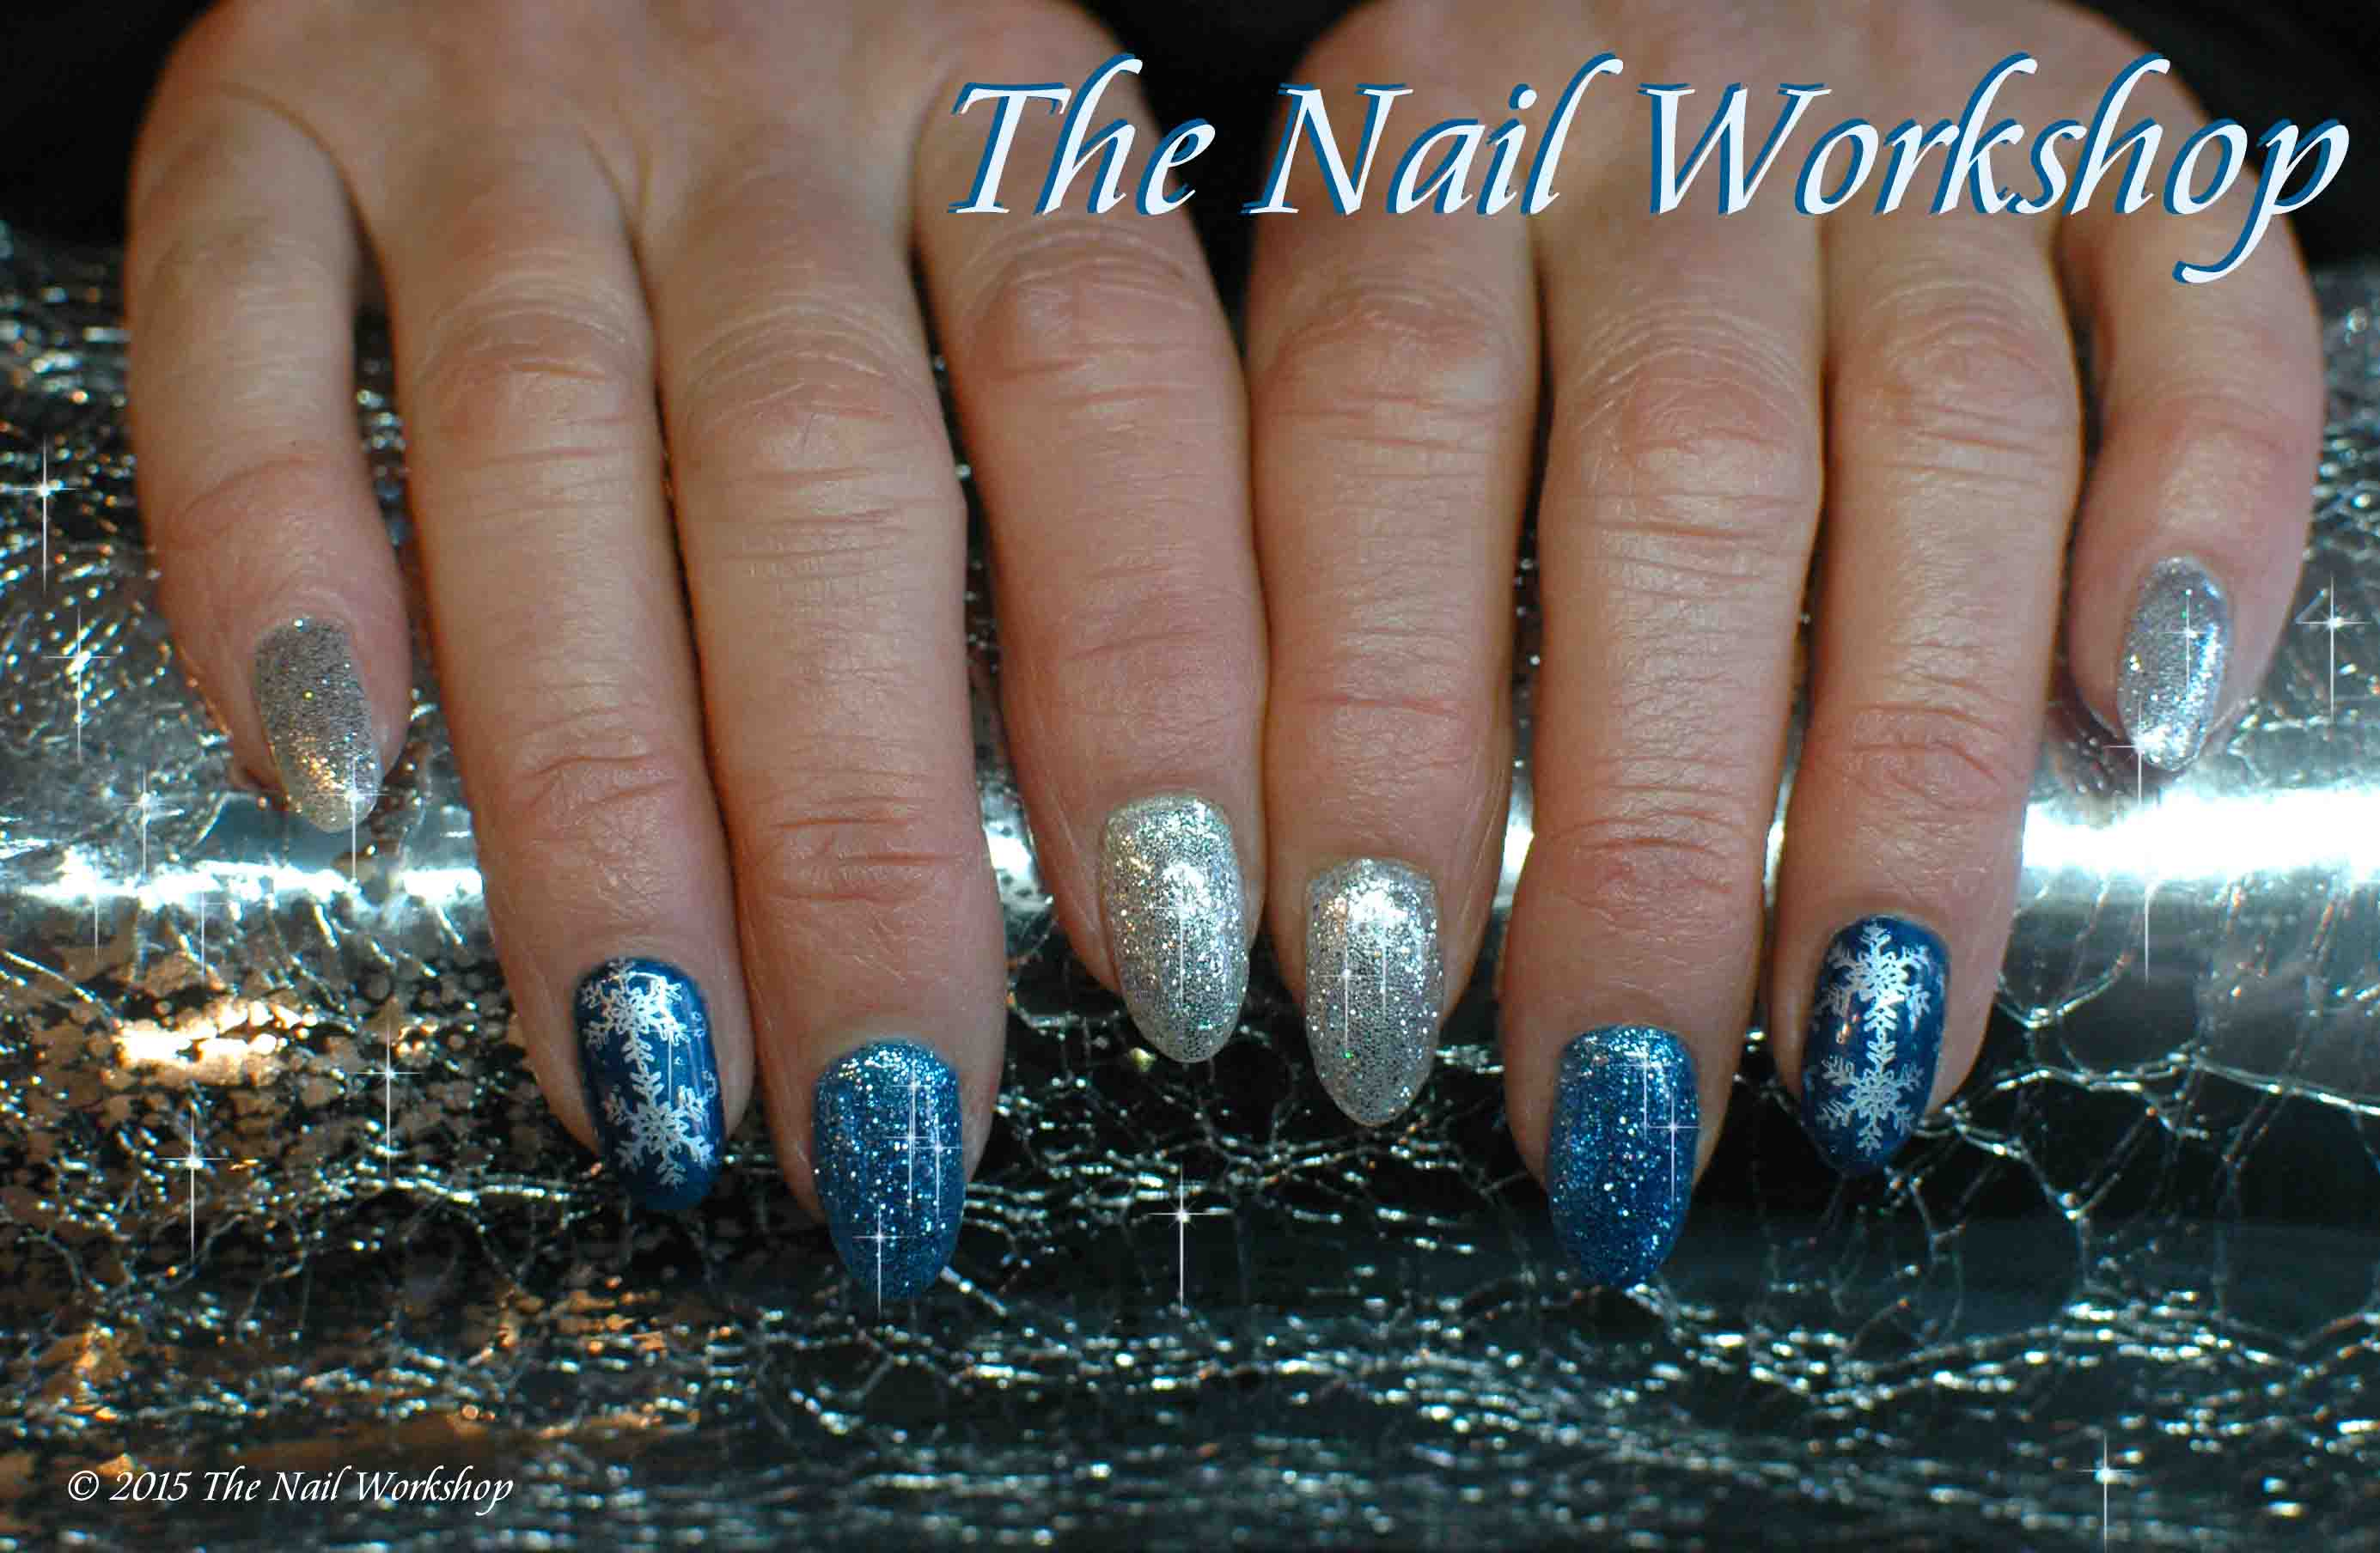 Gelish Magneto Blue and Silver with Glitter